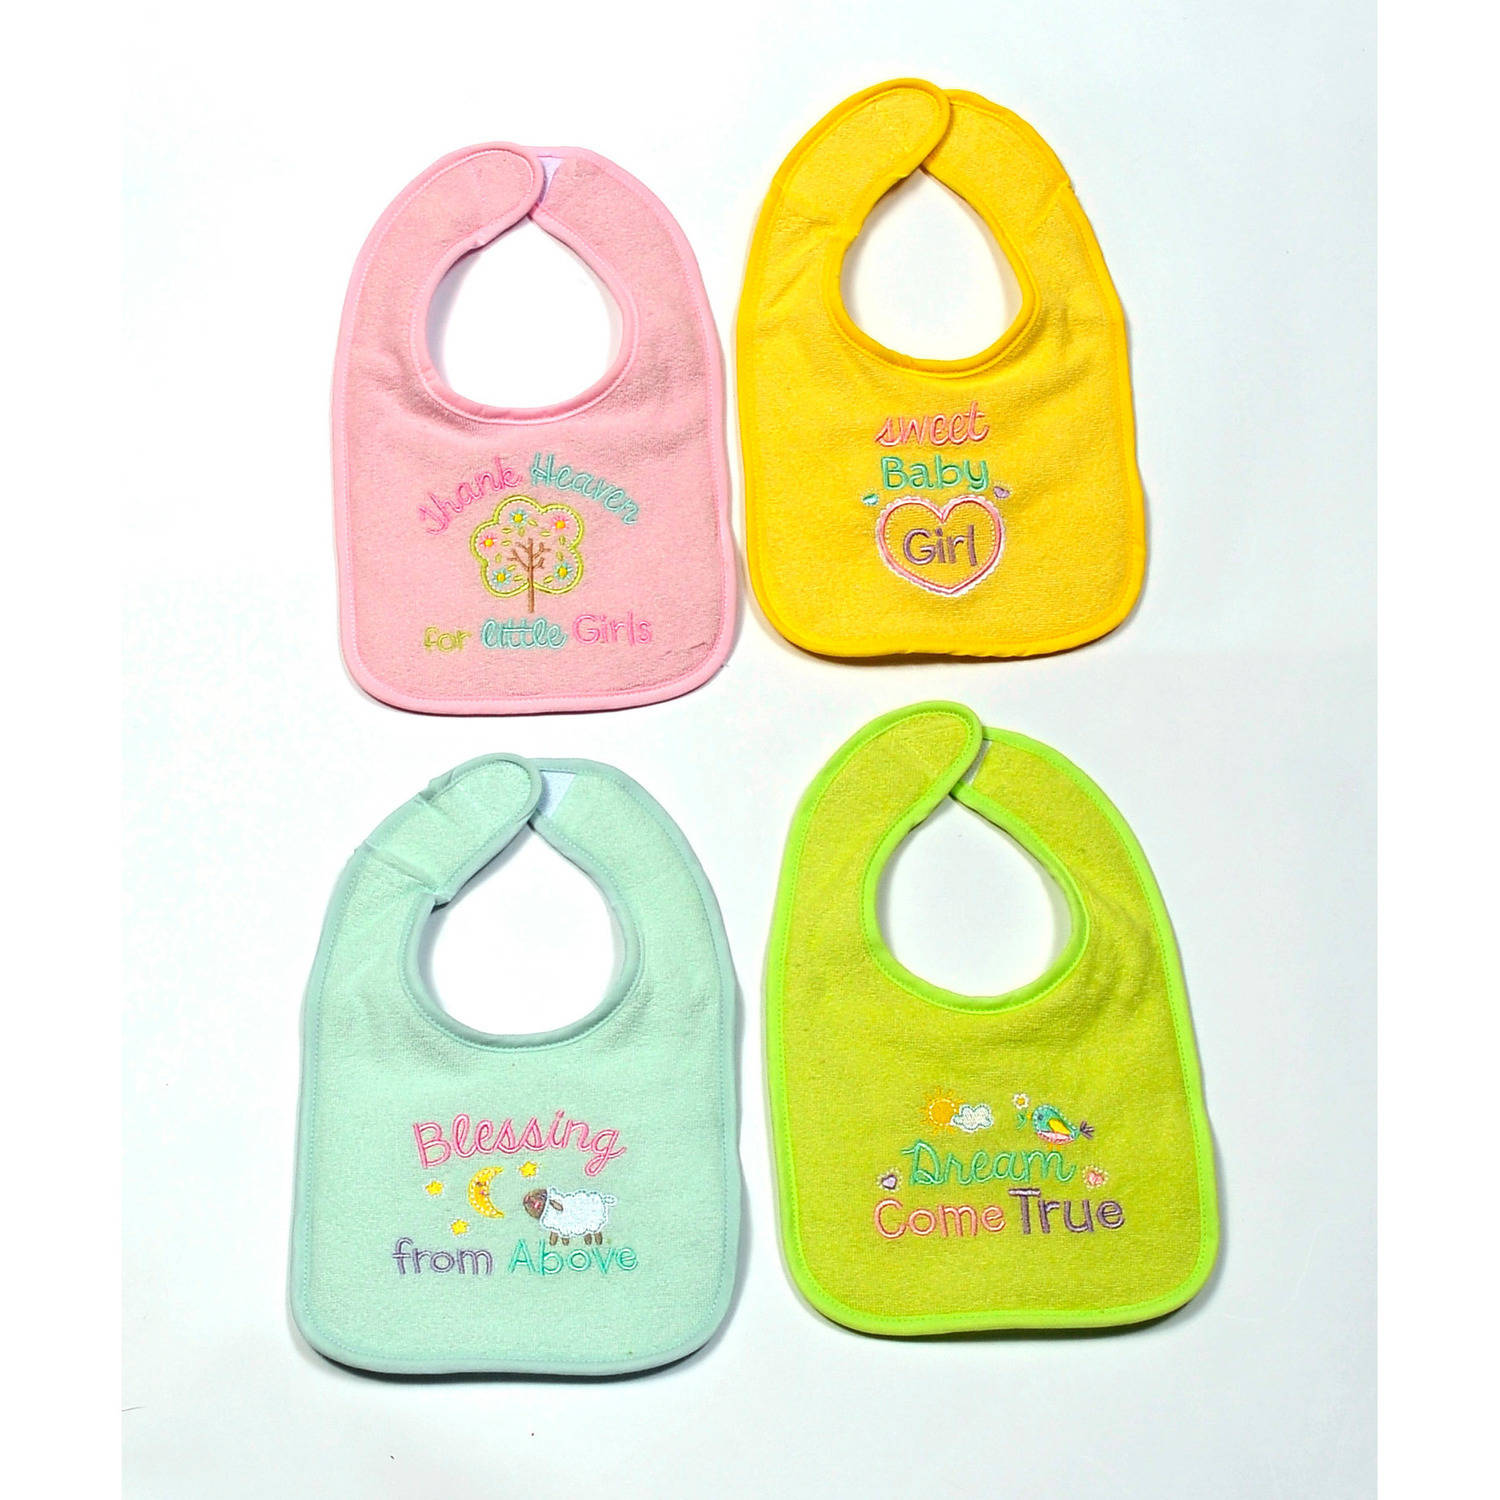 Parent's Choice Baby Bibs, Girl Heavenly Saying, 4 Pack